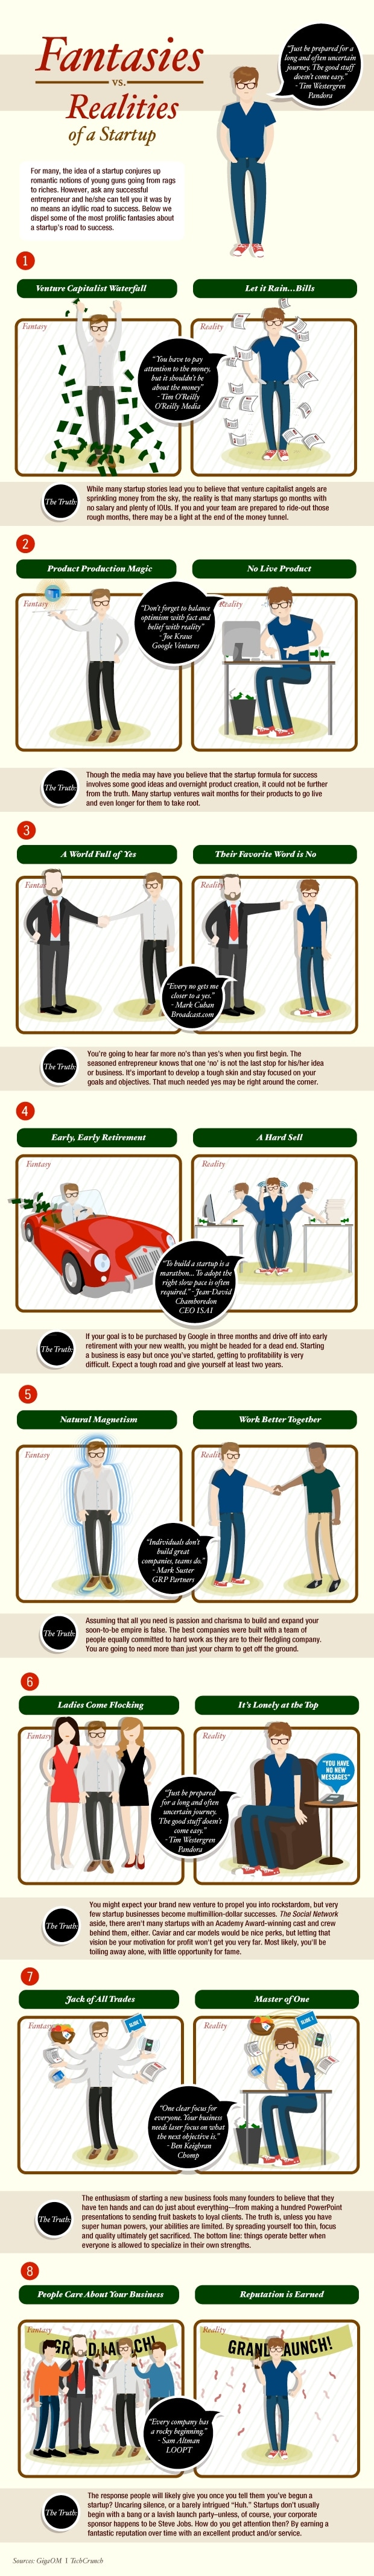 Fantasies vs. Realities Of A Startup [Infographic]